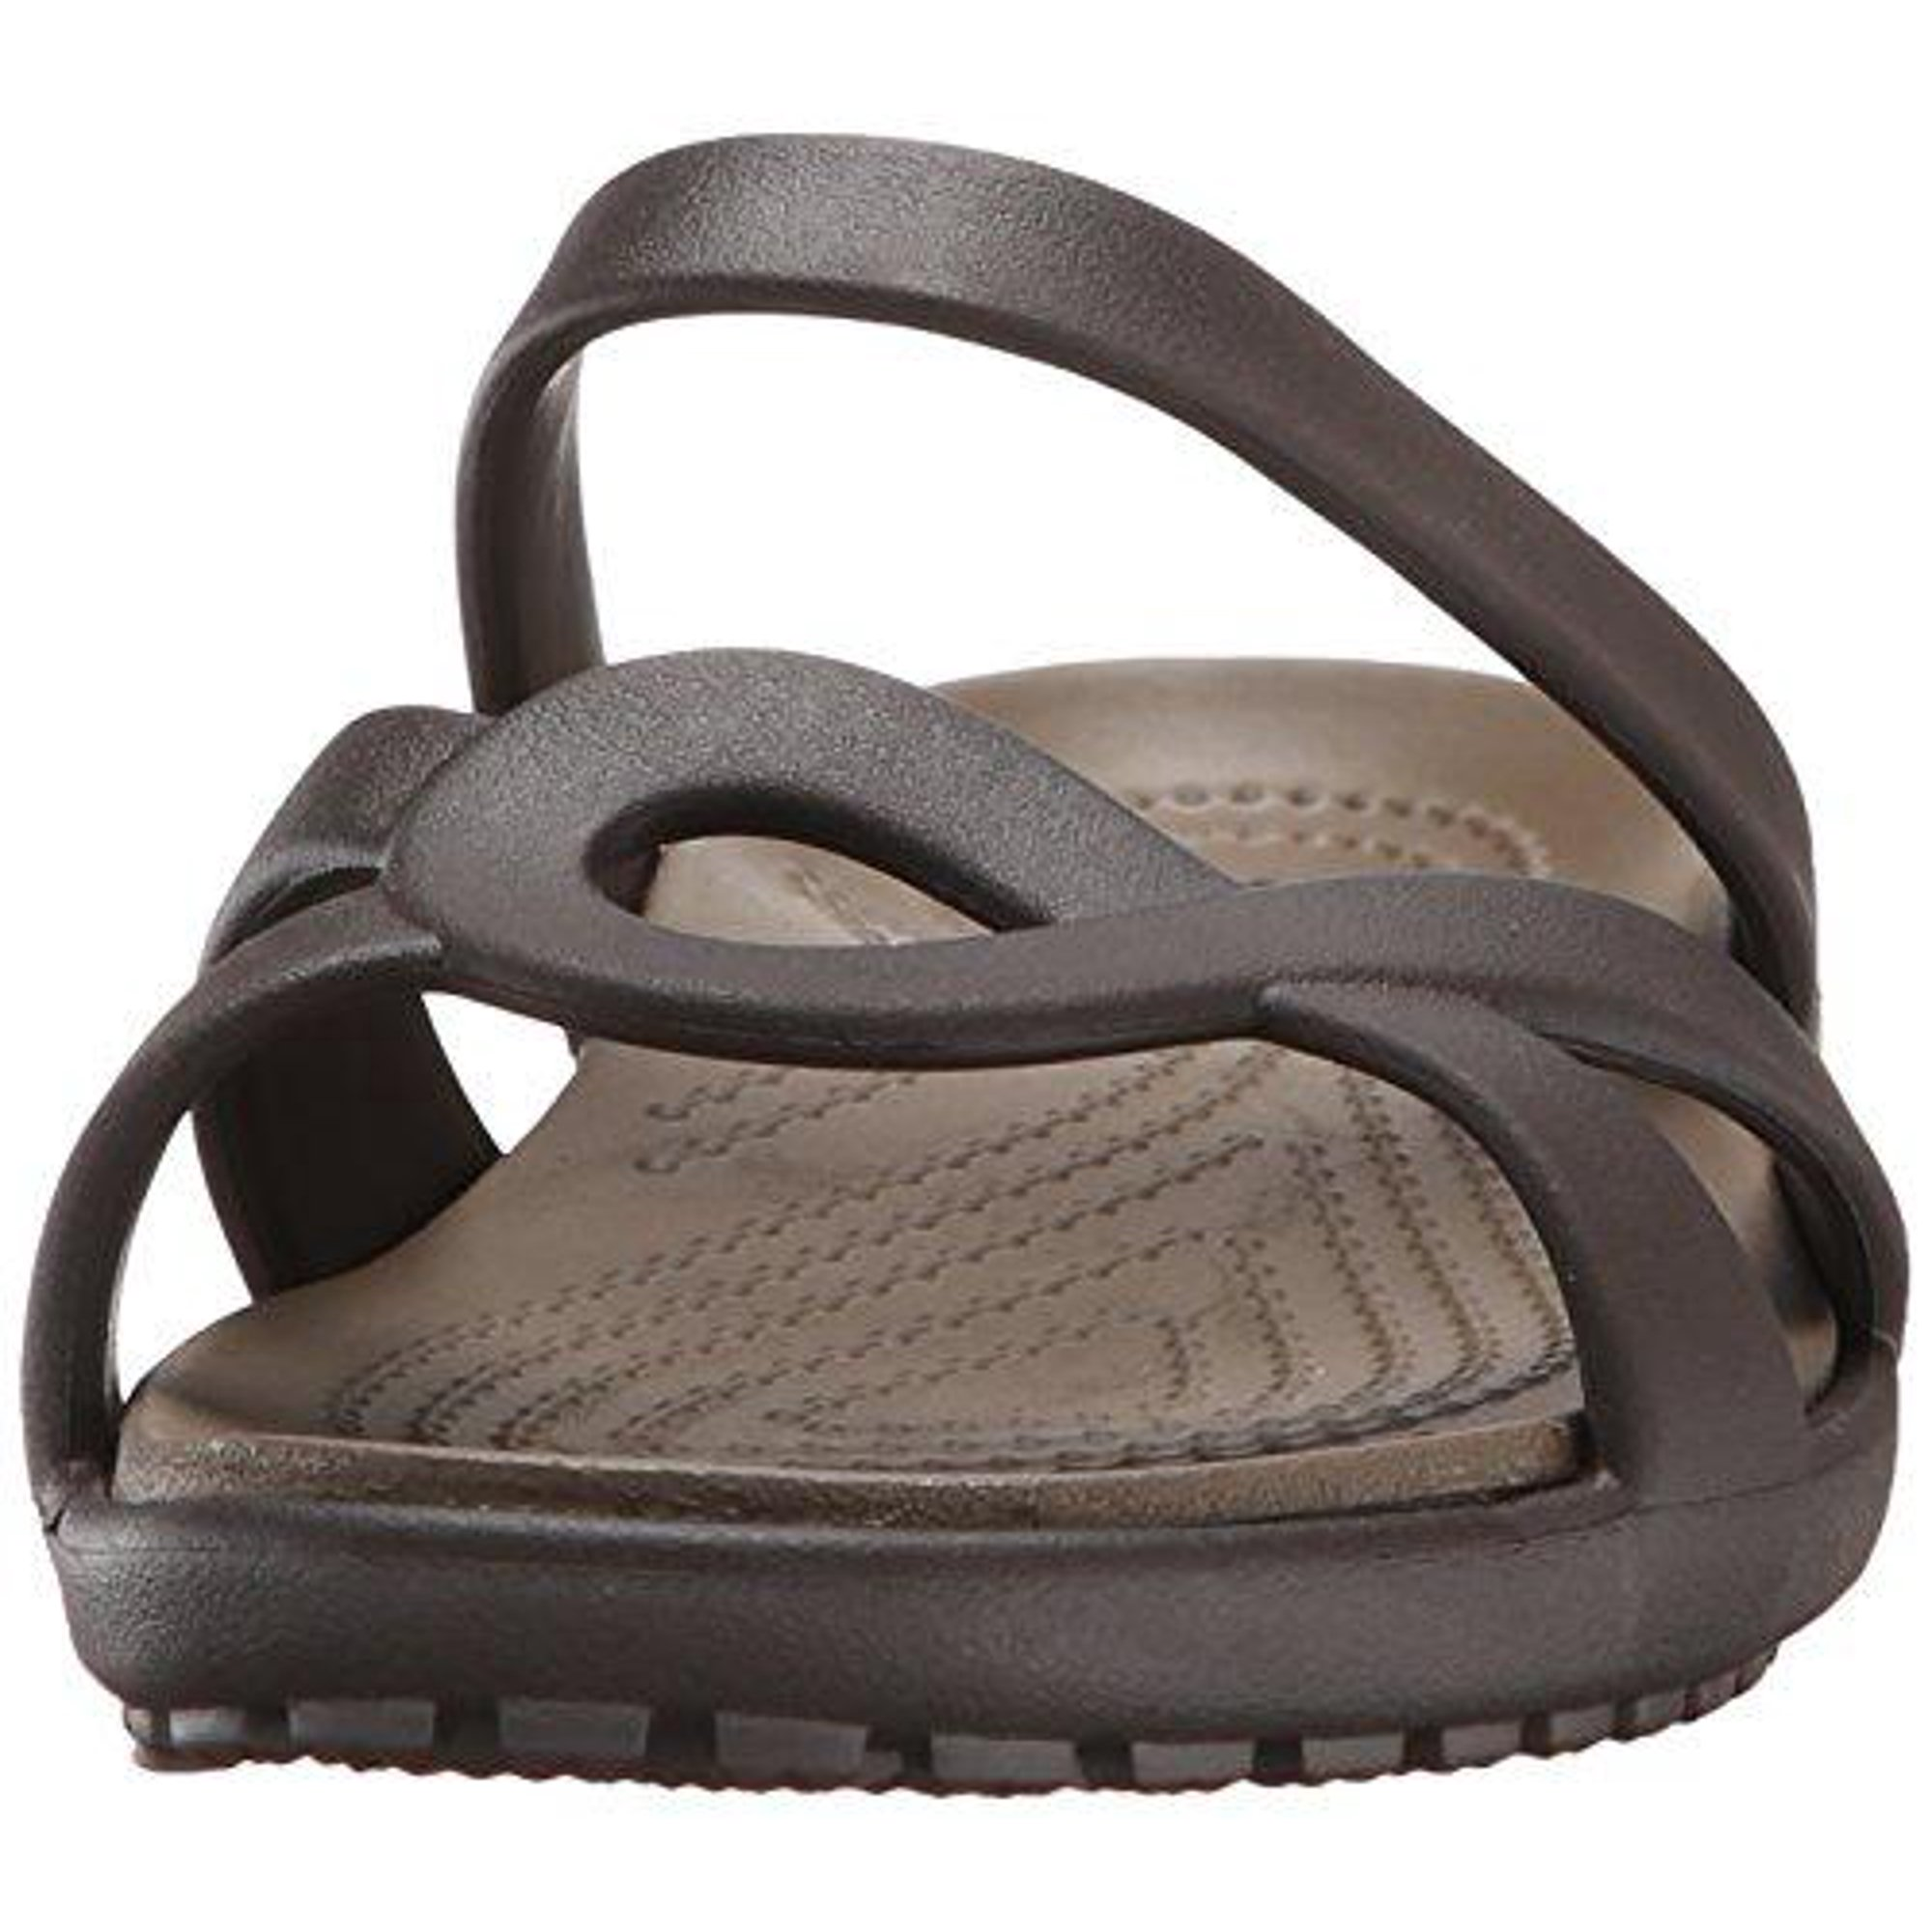 ee01cbb64 Buy Crocs Swiftwater Wave Women s Water Shoe - 203995